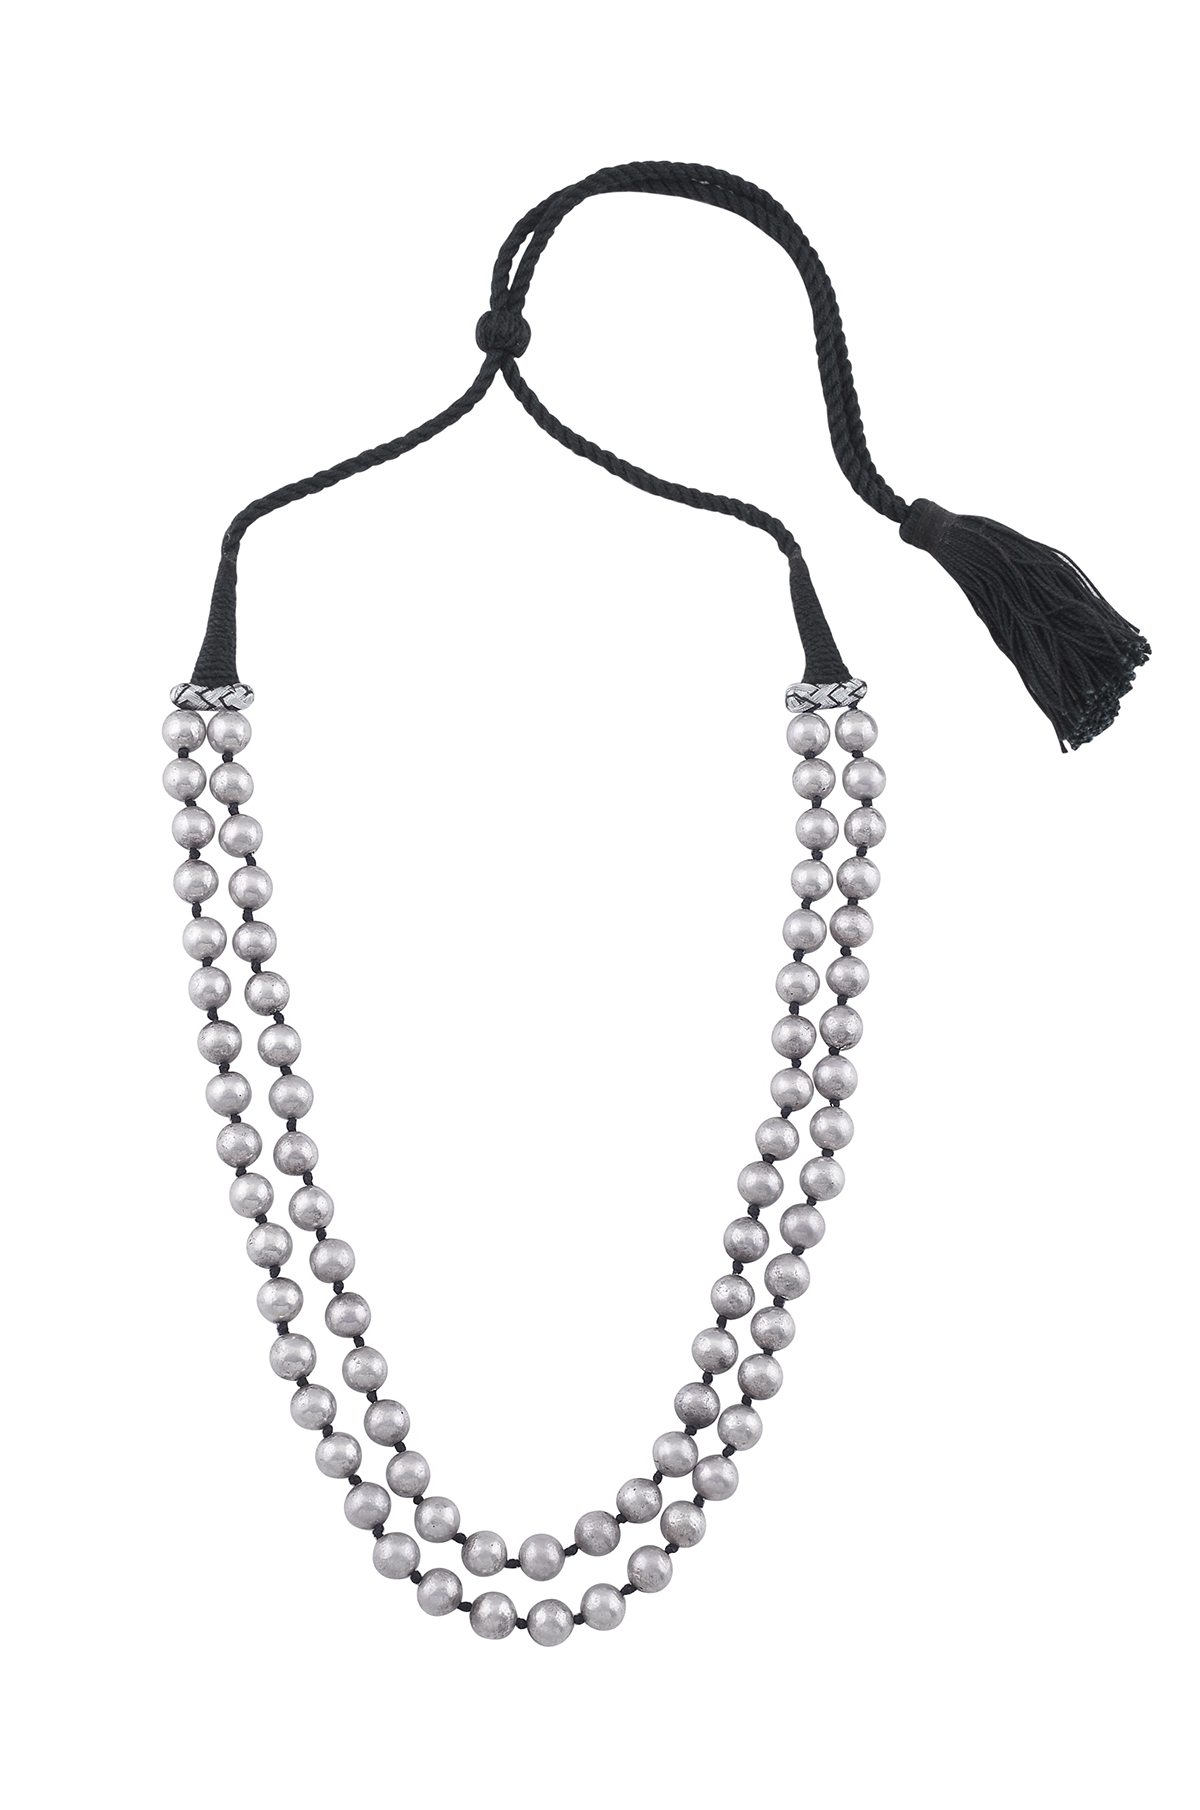 Silver Two Layer Round Bead Necklace